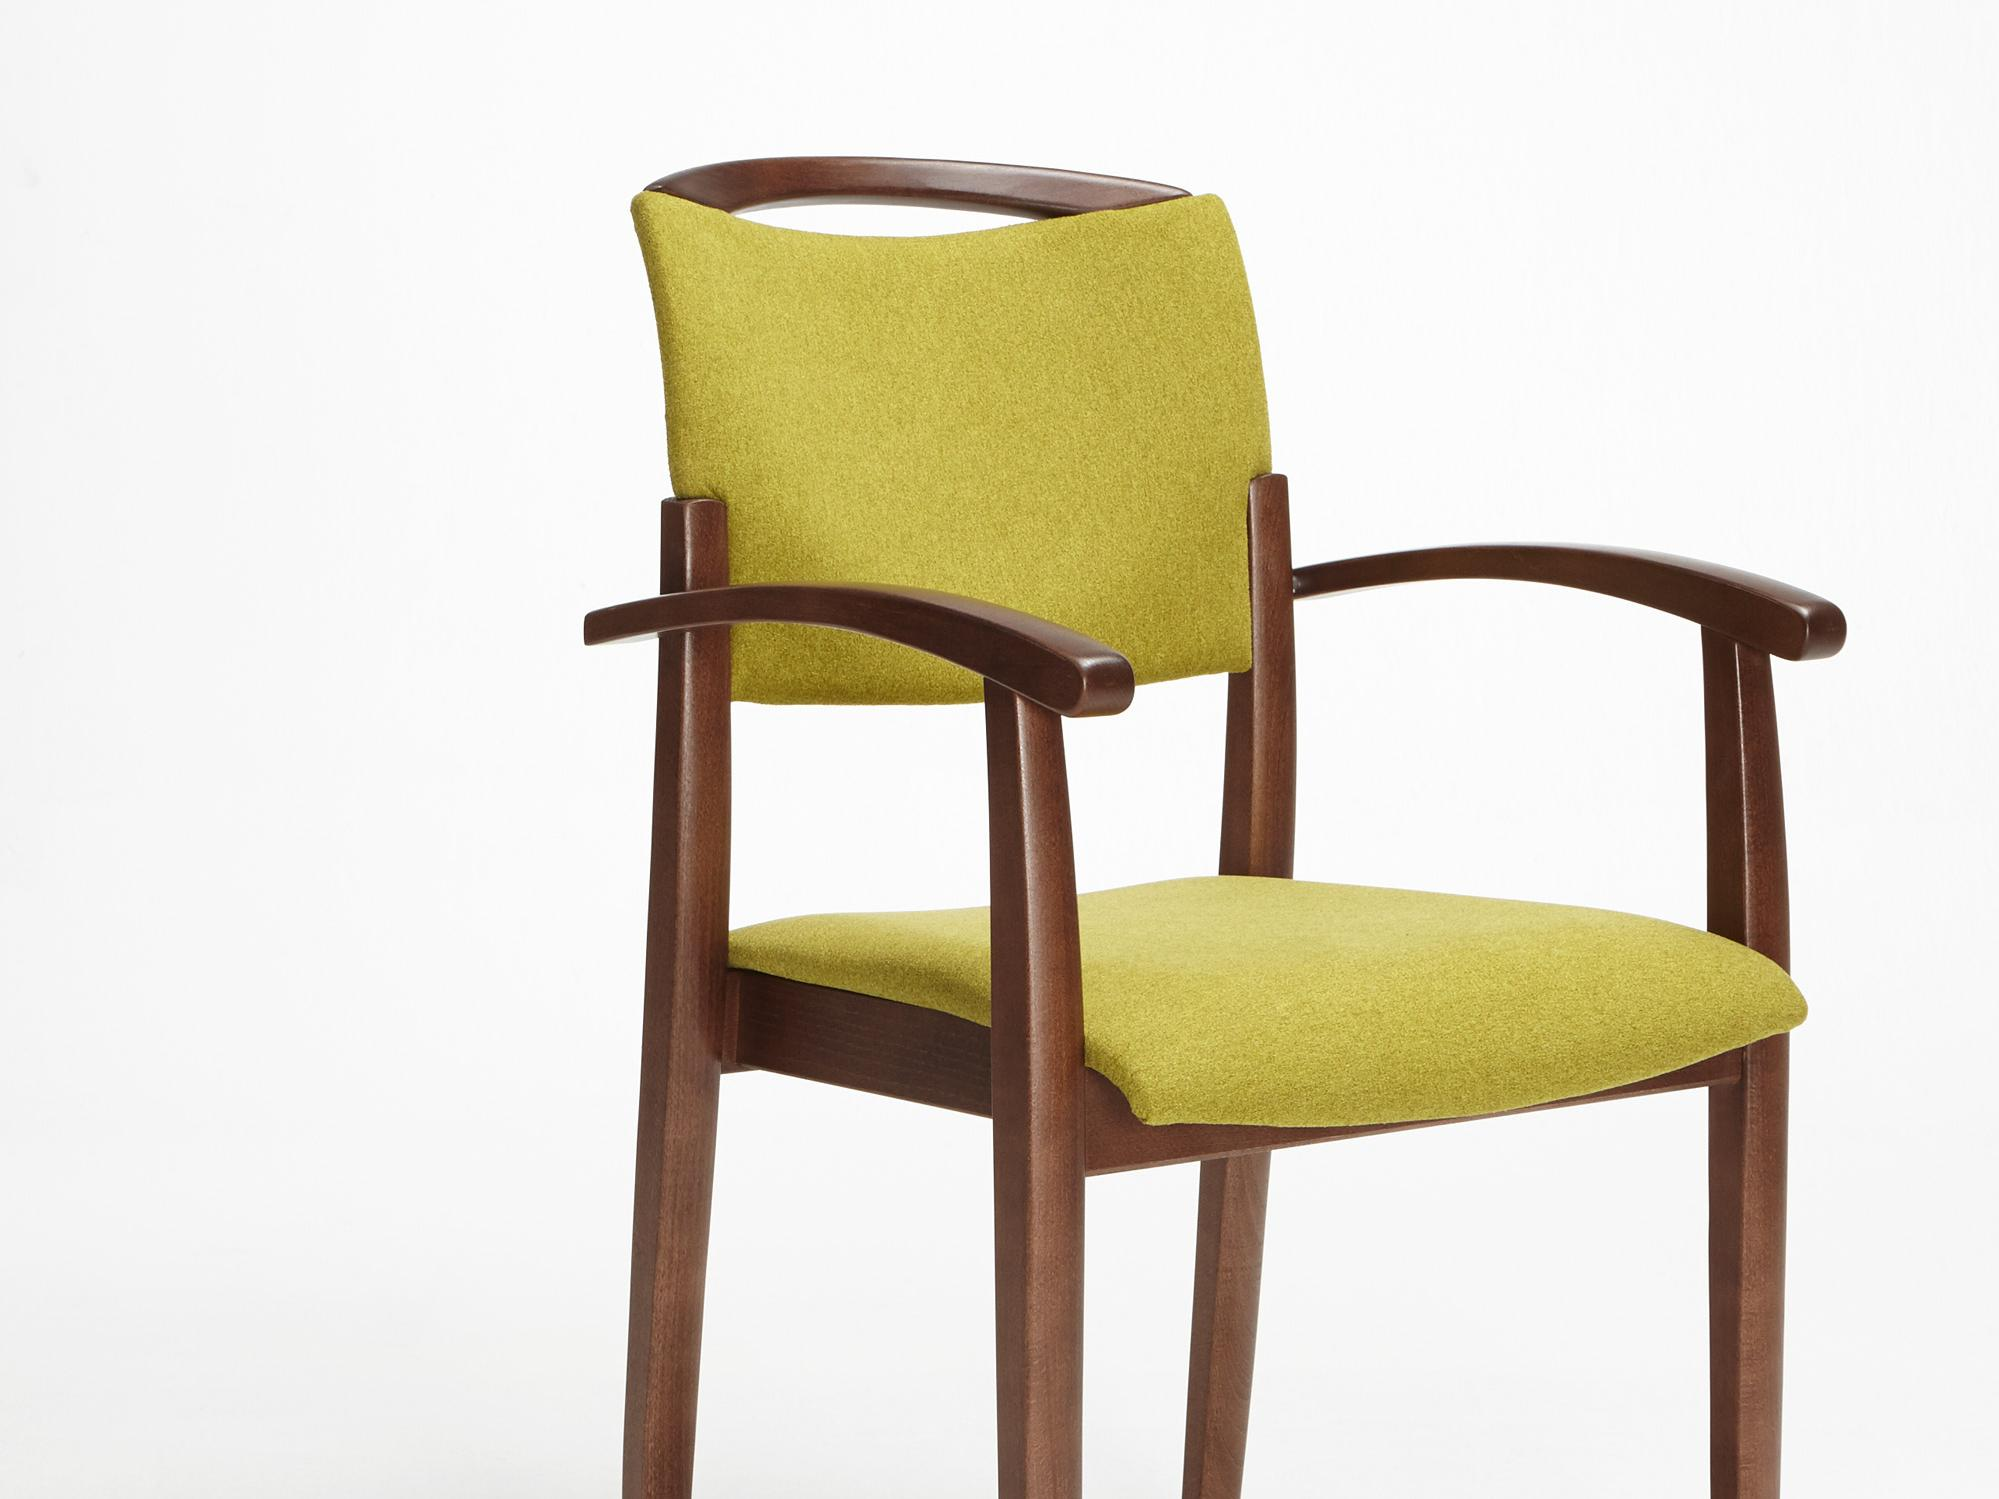 The Fena model as a stackable chair with armrests and handle rail